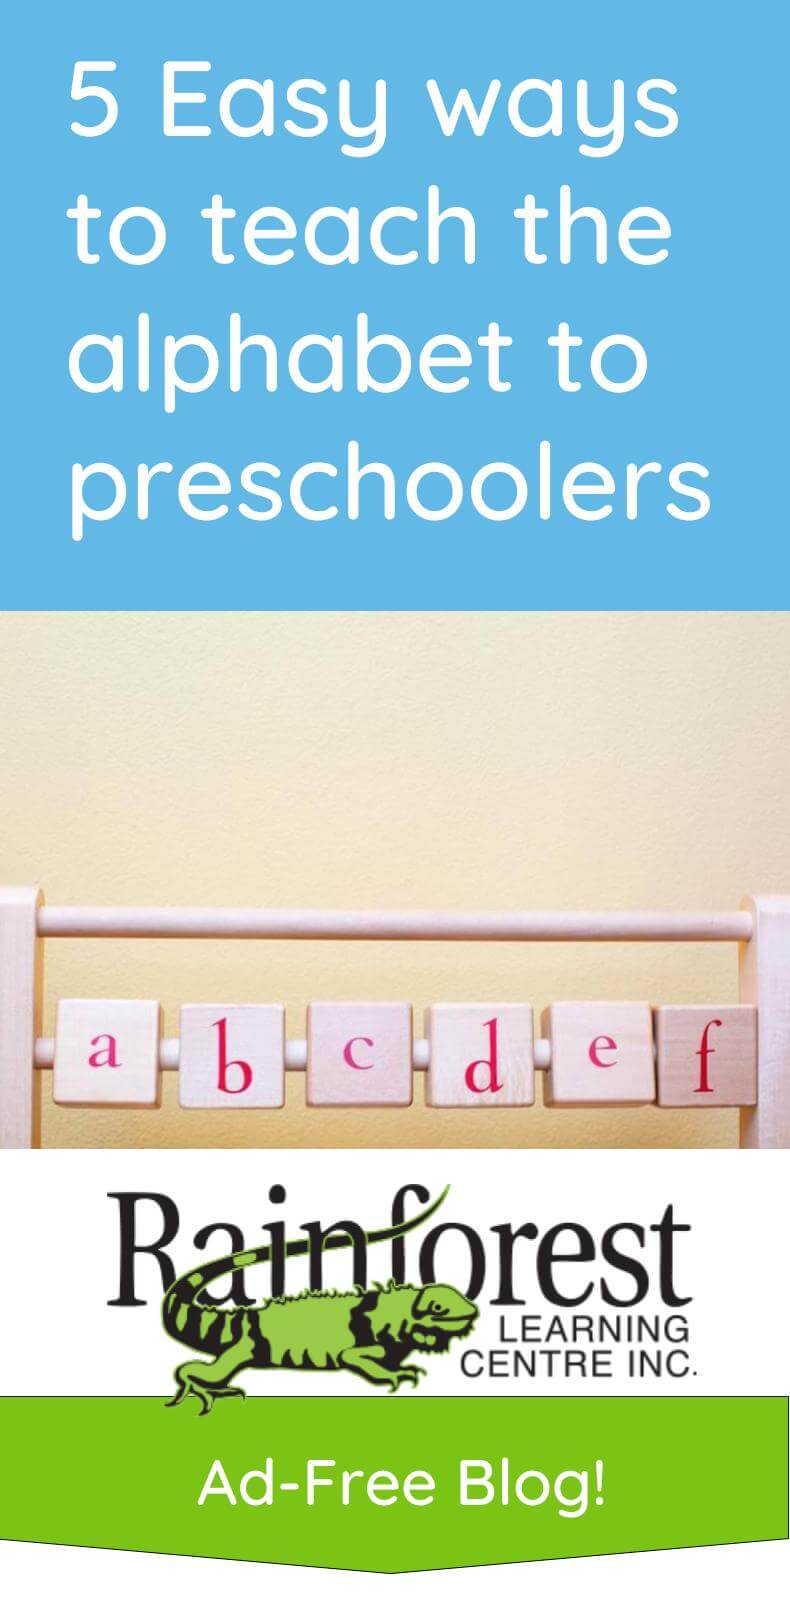 5 Easy ways to teach the alphabet to preschoolers article - pinterest image